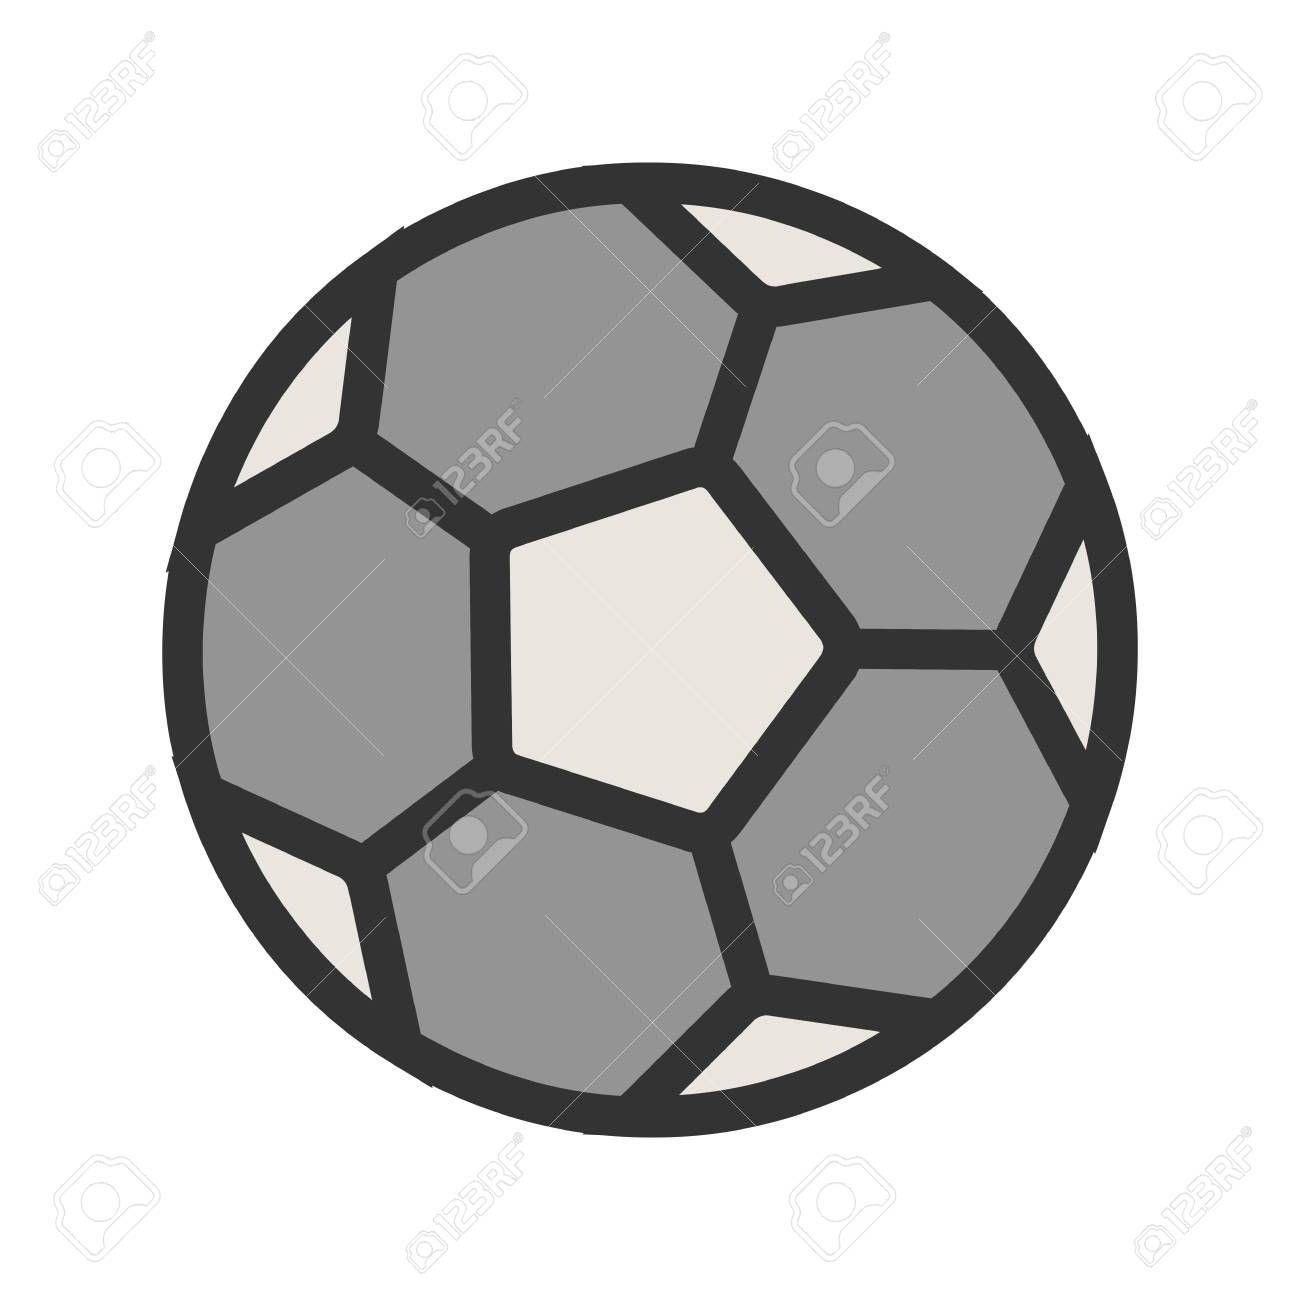 Football, ball, soccer, sports icon image. Can also be used for fitness, recreation. Suitable for we...